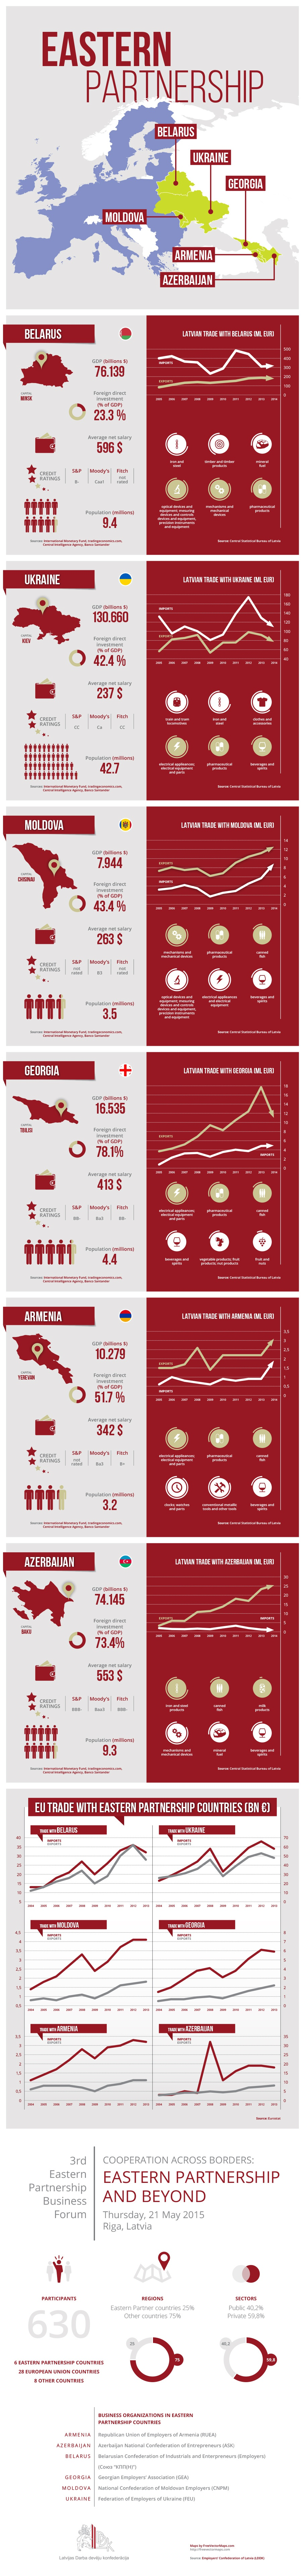 infografika_eastern-partnership_2015